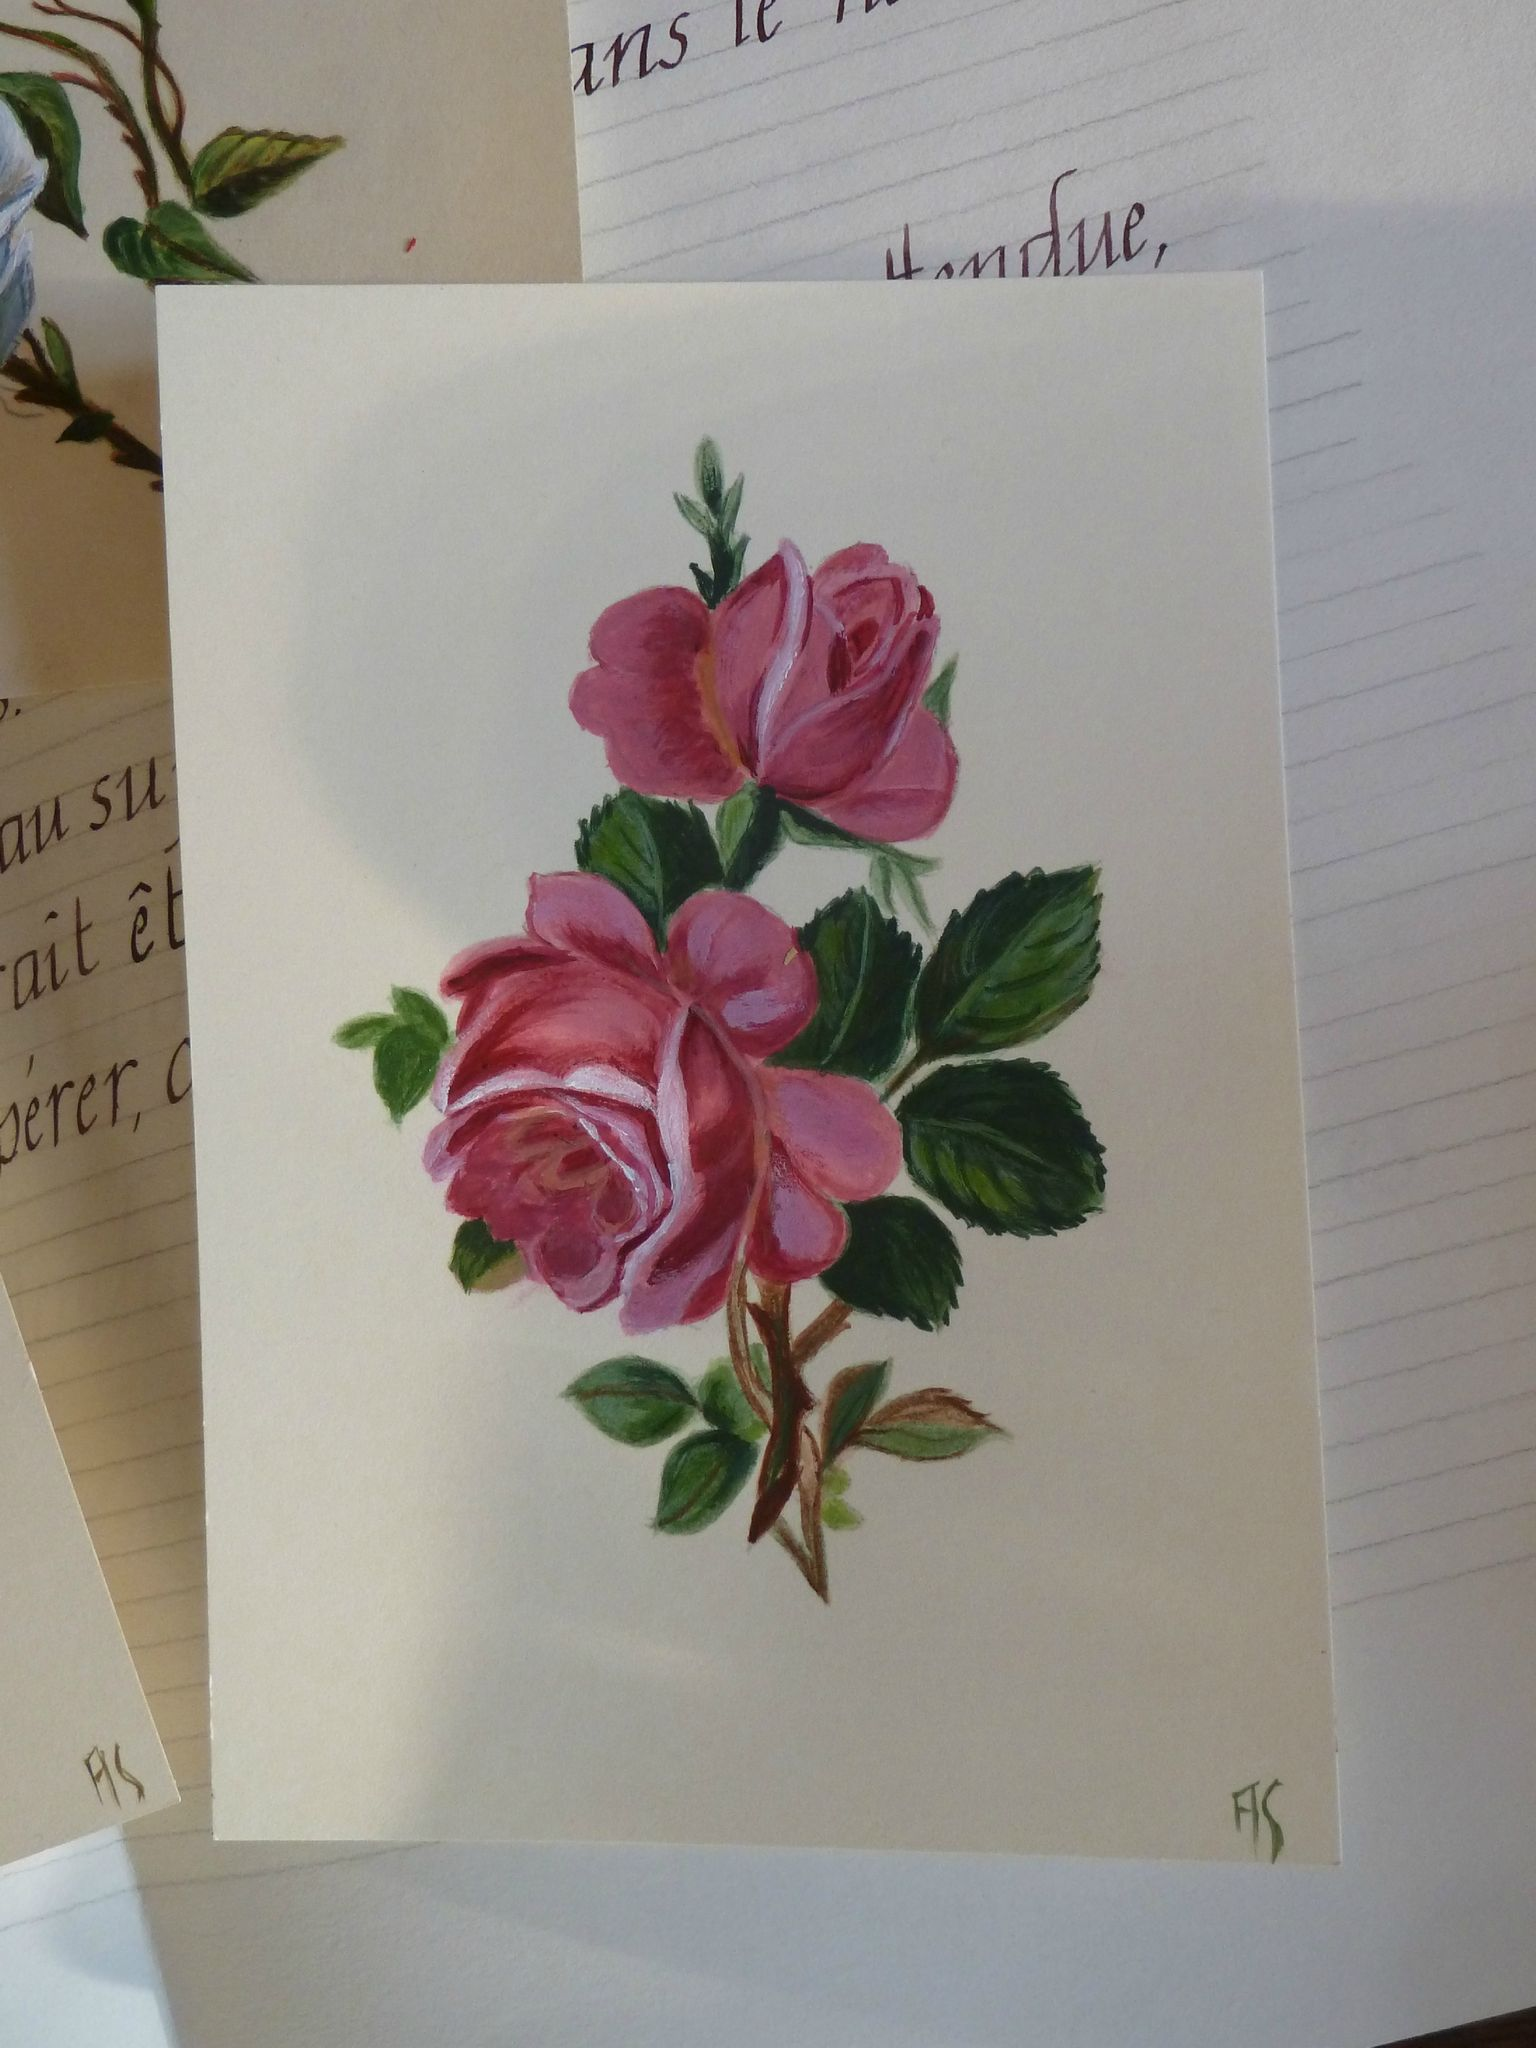 cartes peintes - roses rouges